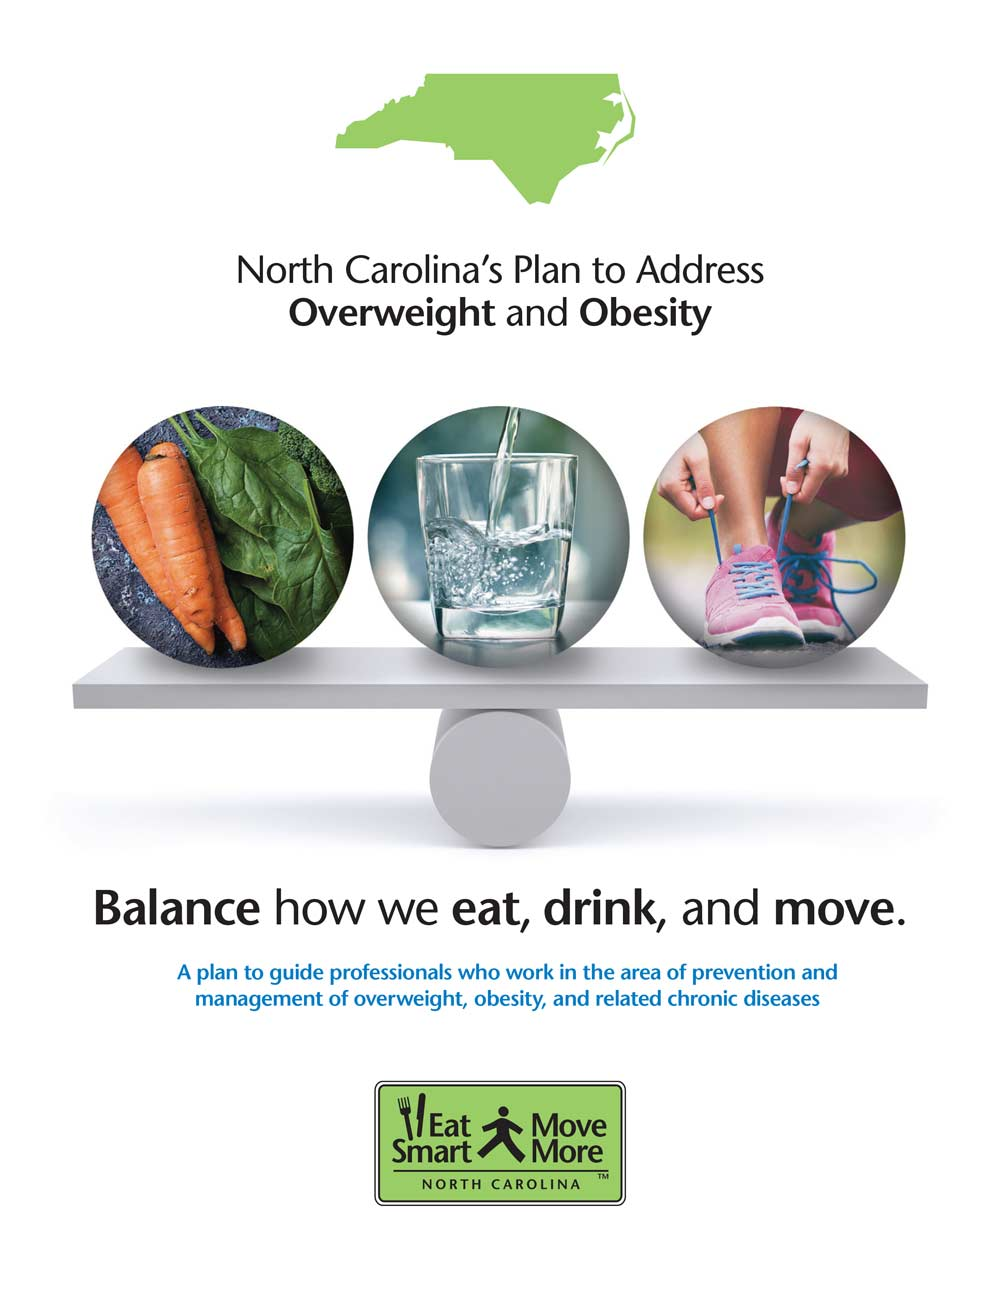 North Carolina's Plan to Address Obesity